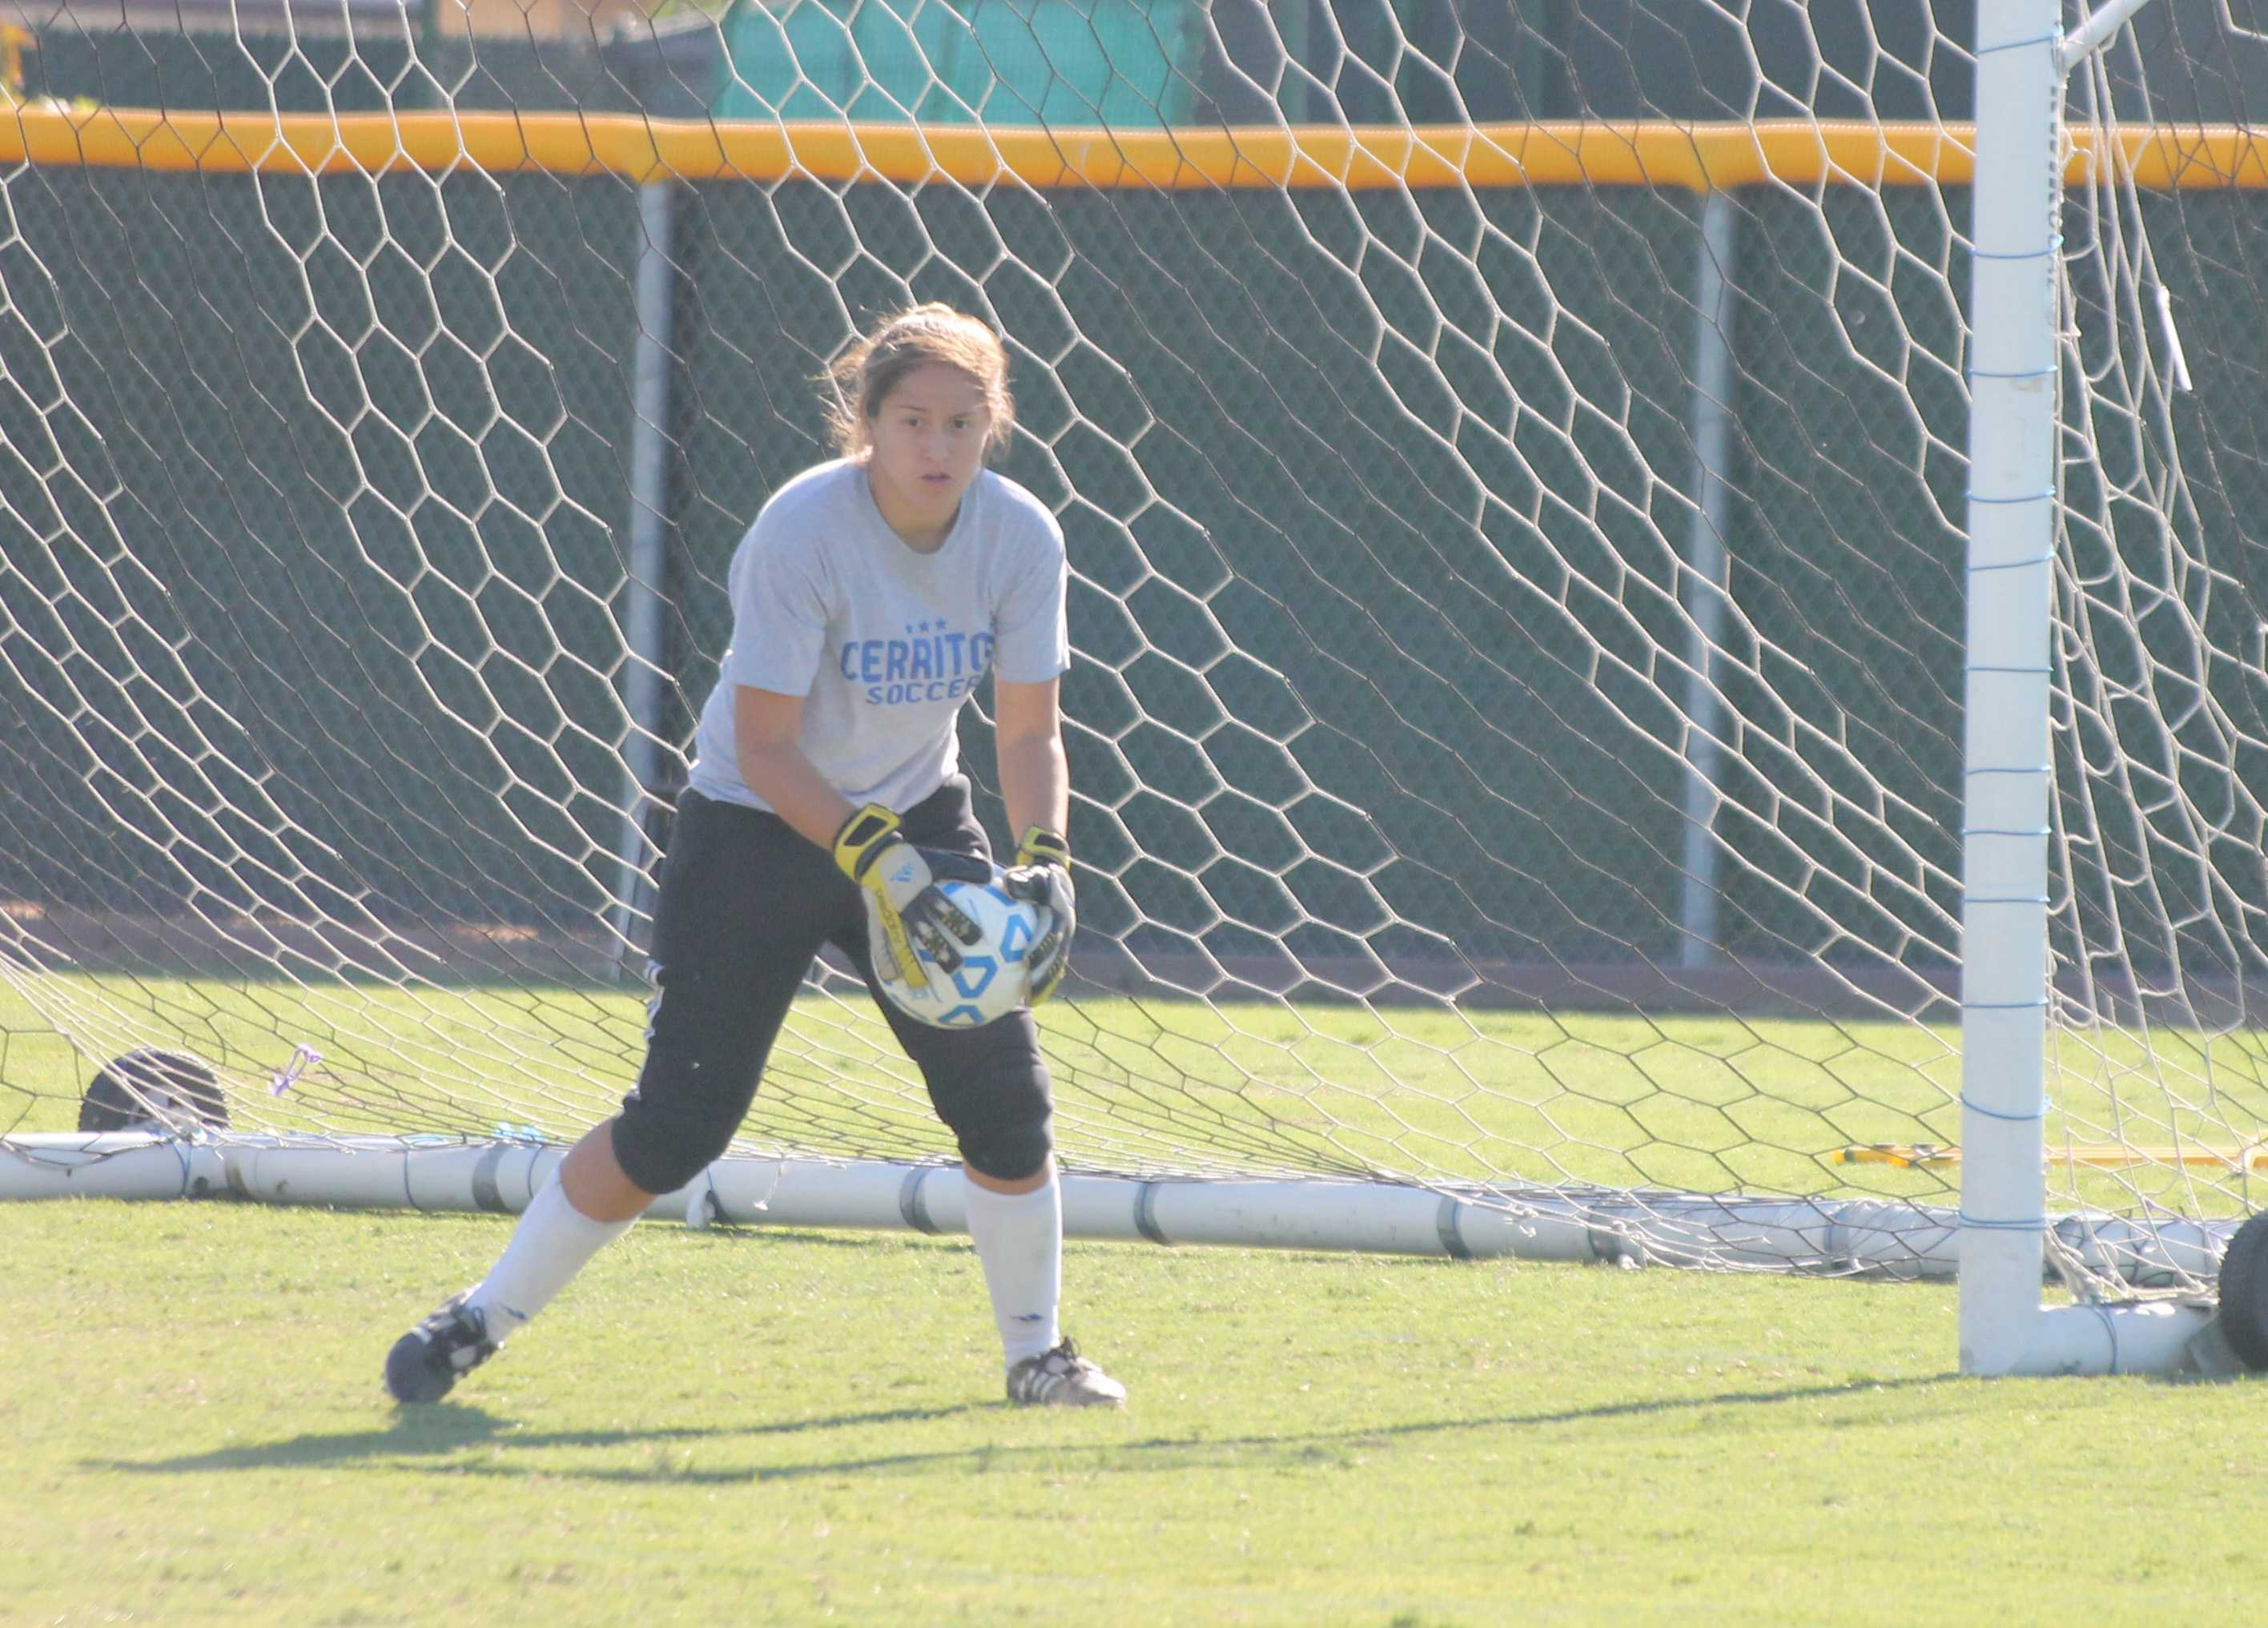 Sophomore goalkeeper Alexis Carrillo intercepts the ball and prevents it from entering the goal while doing a soccer drill during practice. She torn her ACL last season and is getting better as the season goes on.